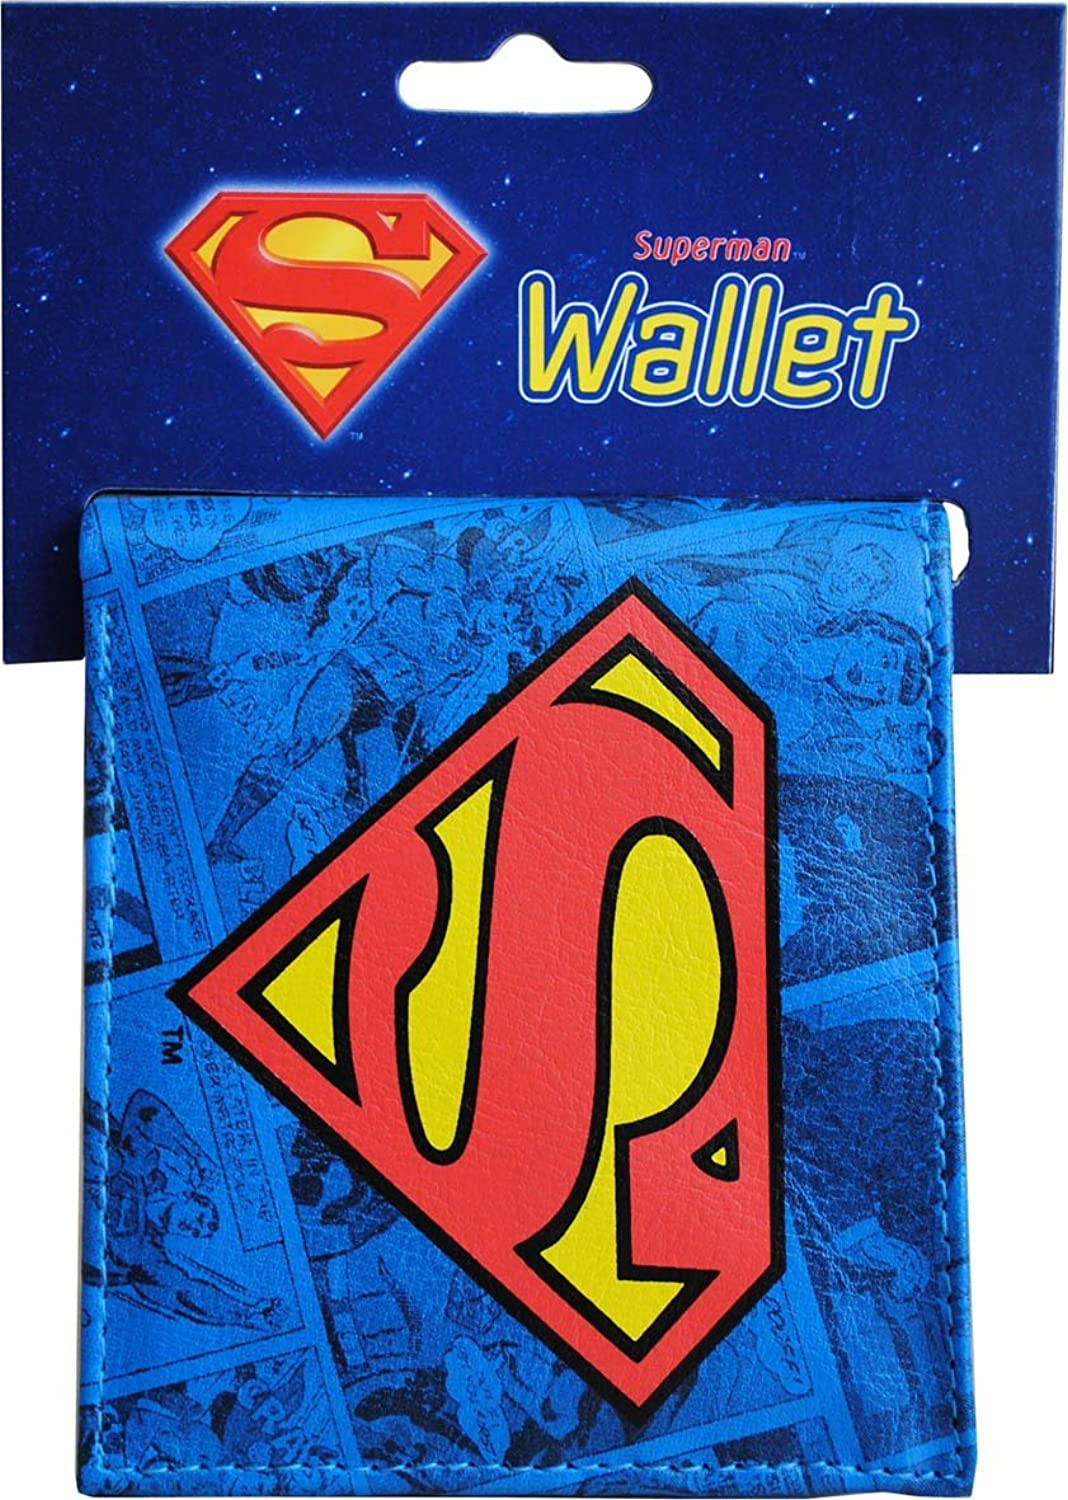 Superman Wallet - official licensed product